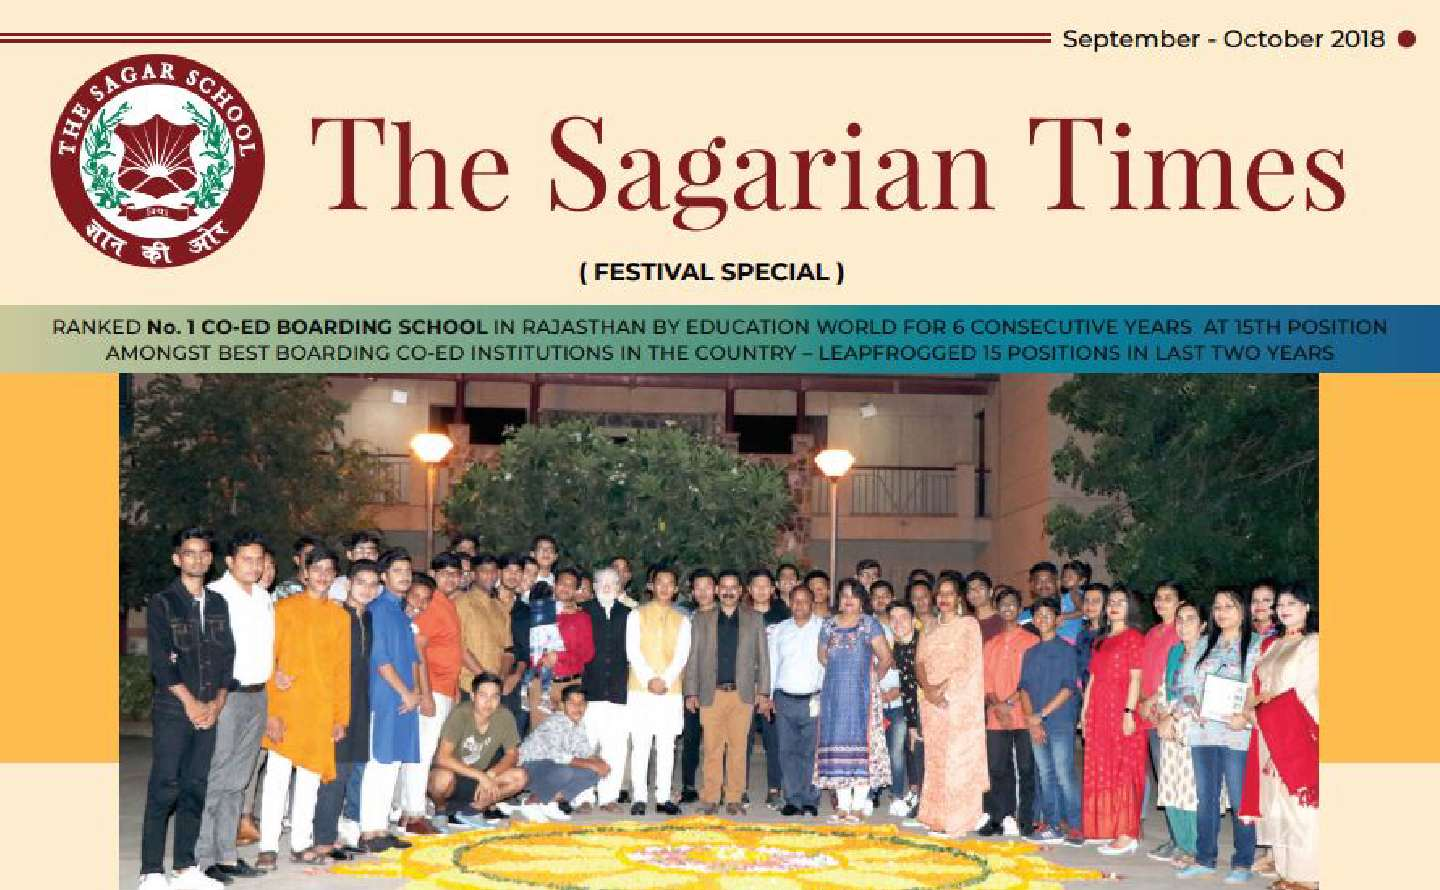 The Sagarian Times September - October 2018